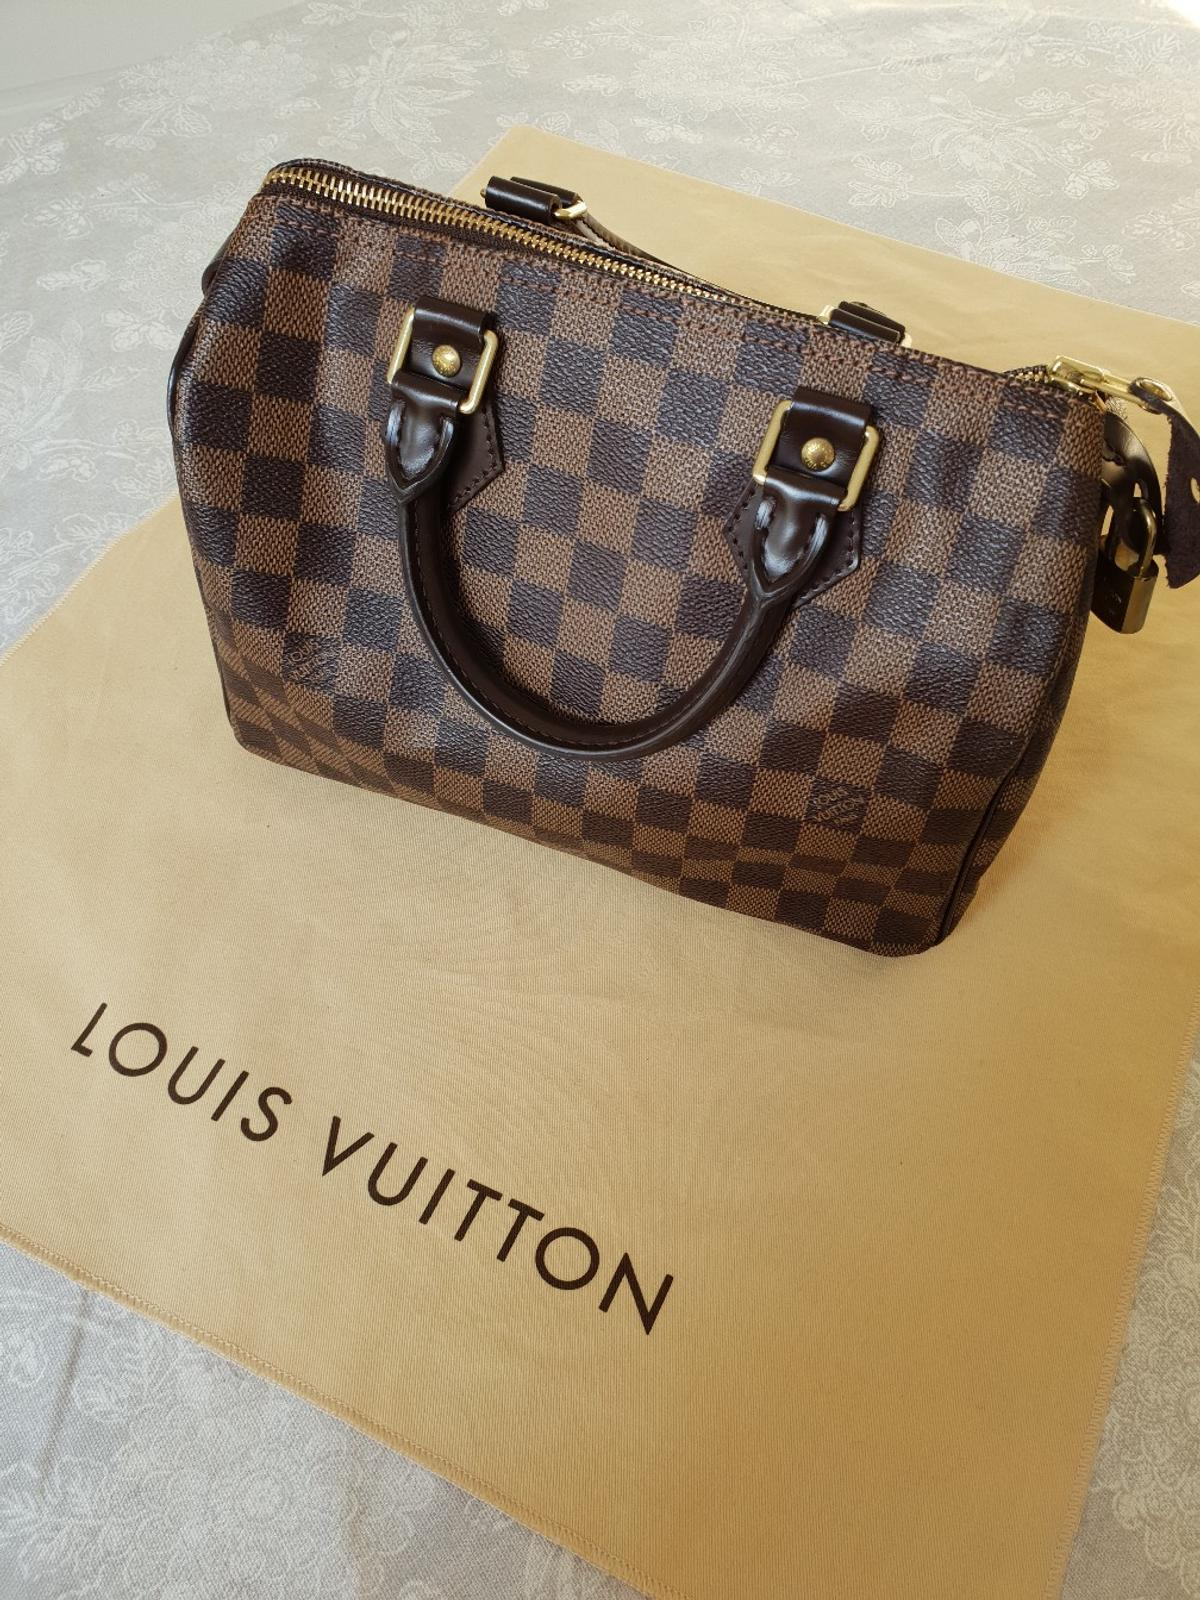 4bab1a73c28 Original Louis Vuitton Speedy 25 in HP12 Wycombe for £400.00 for ...